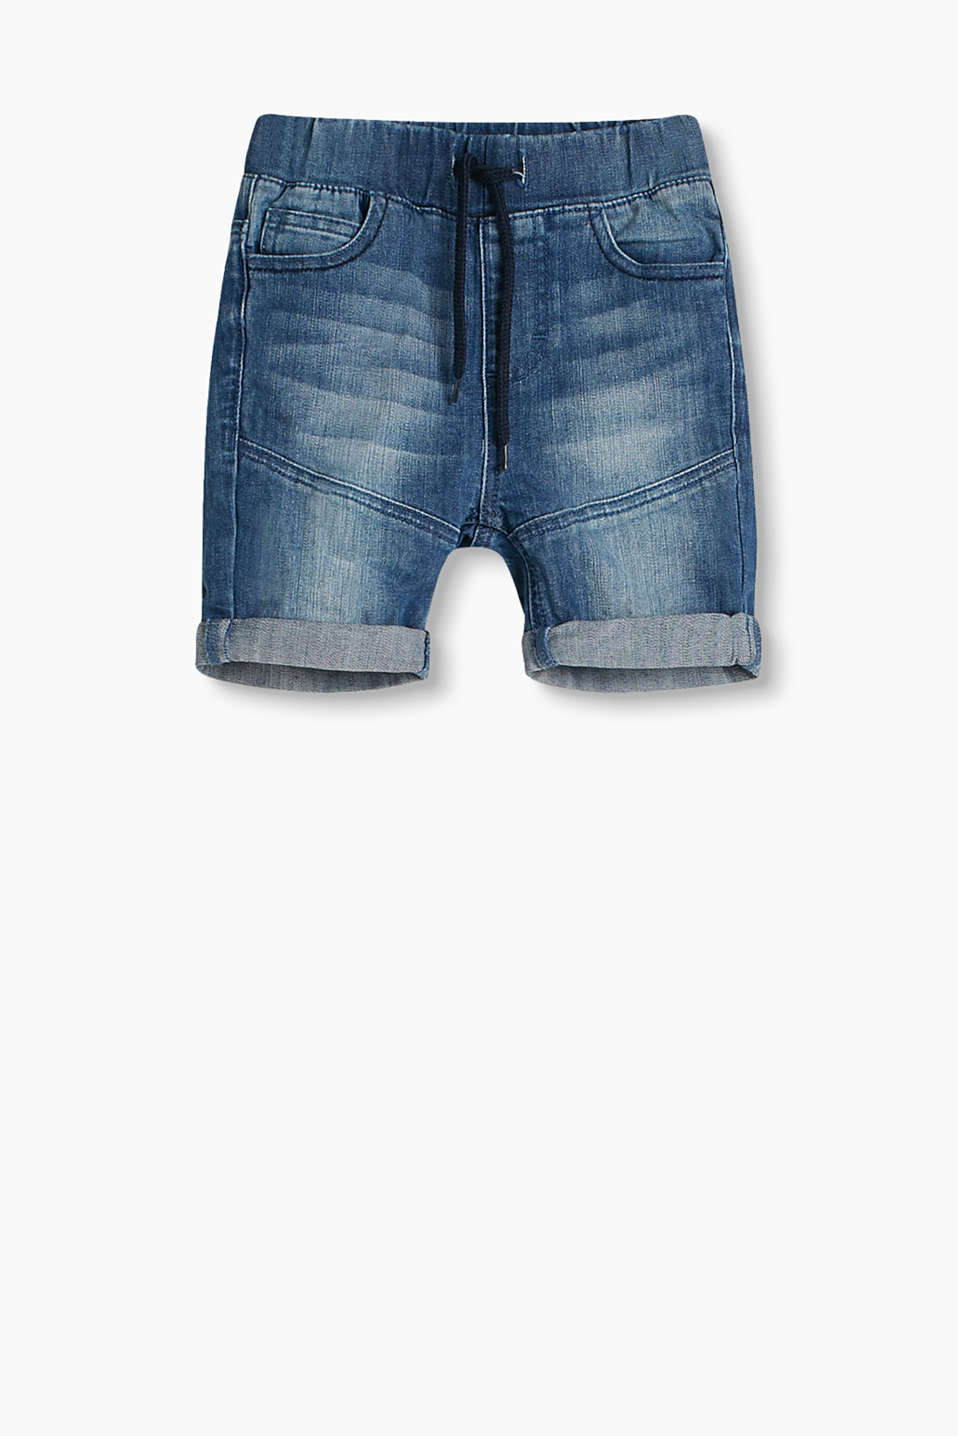 Casual washed 5-pocket shorts in stretch denim, with an adjustable waistband